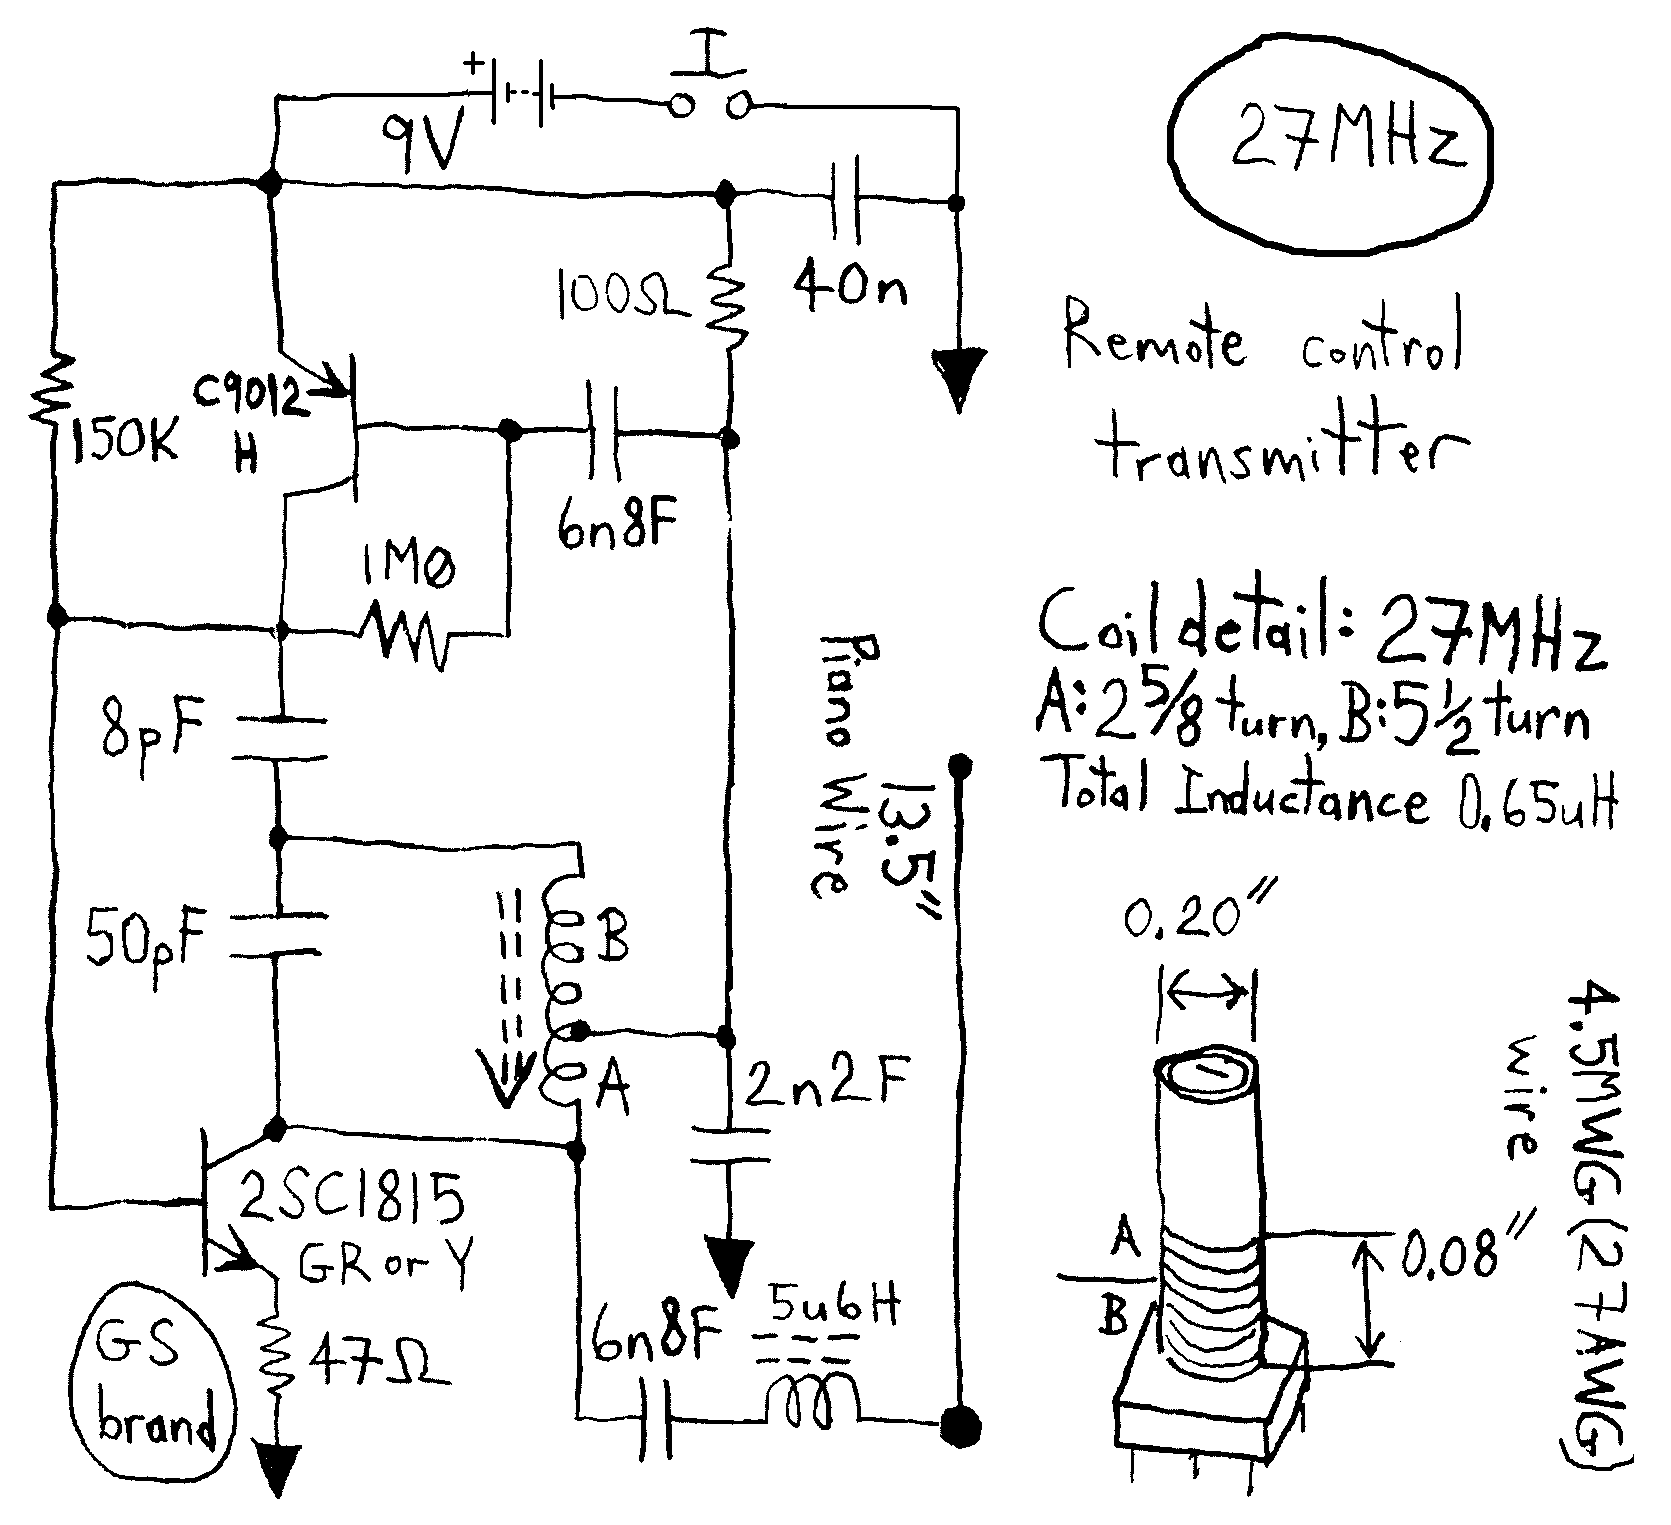 transmitter and receiver circuit diagram for rc car transmitter rc car circuit diagram the wiring diagram on transmitter and receiver circuit diagram for rc car